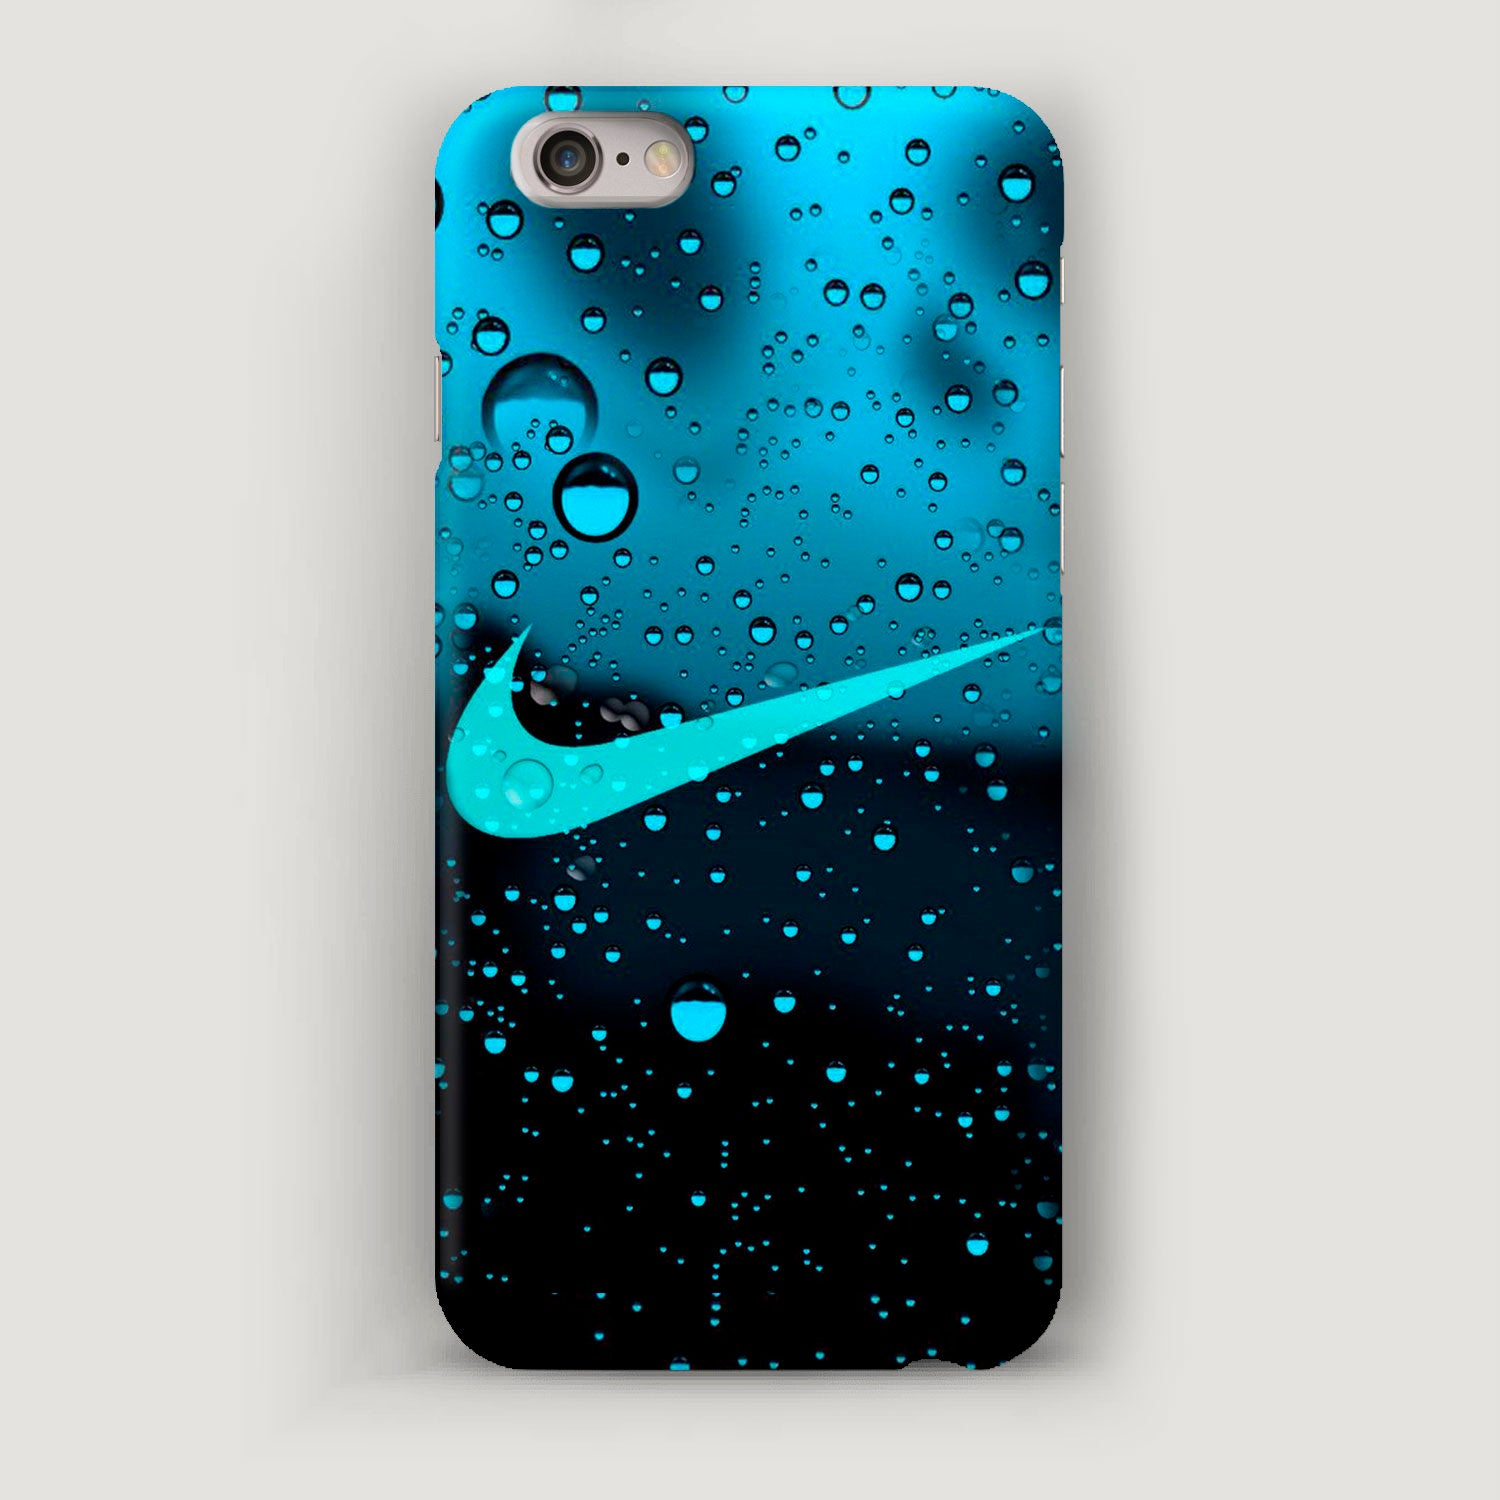 nike blue iphone 7 case blue iphone se case rain iphone 5c. Black Bedroom Furniture Sets. Home Design Ideas